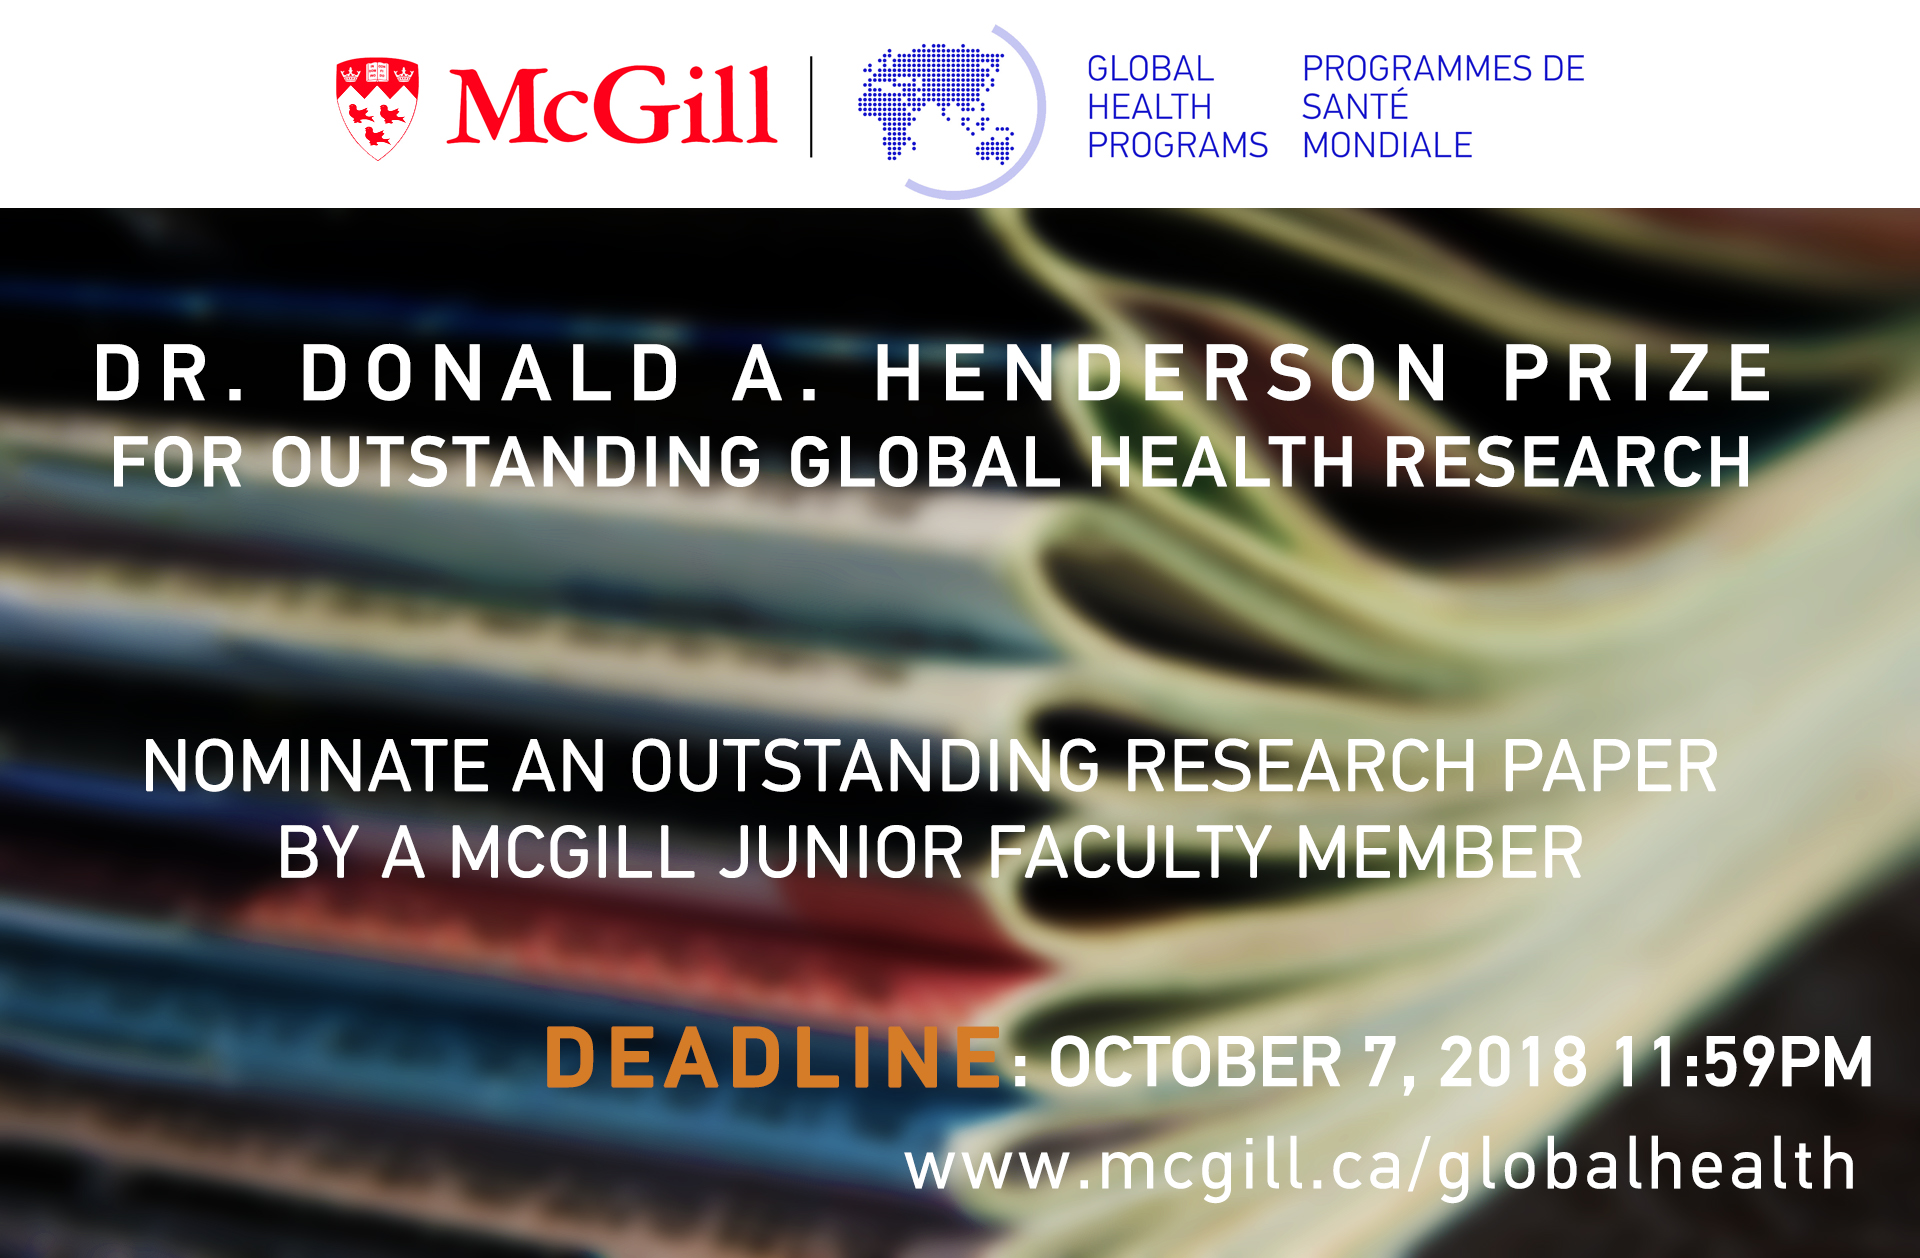 Dr. Donald A. Henderson Prize Call for nominations - Deadline October 7